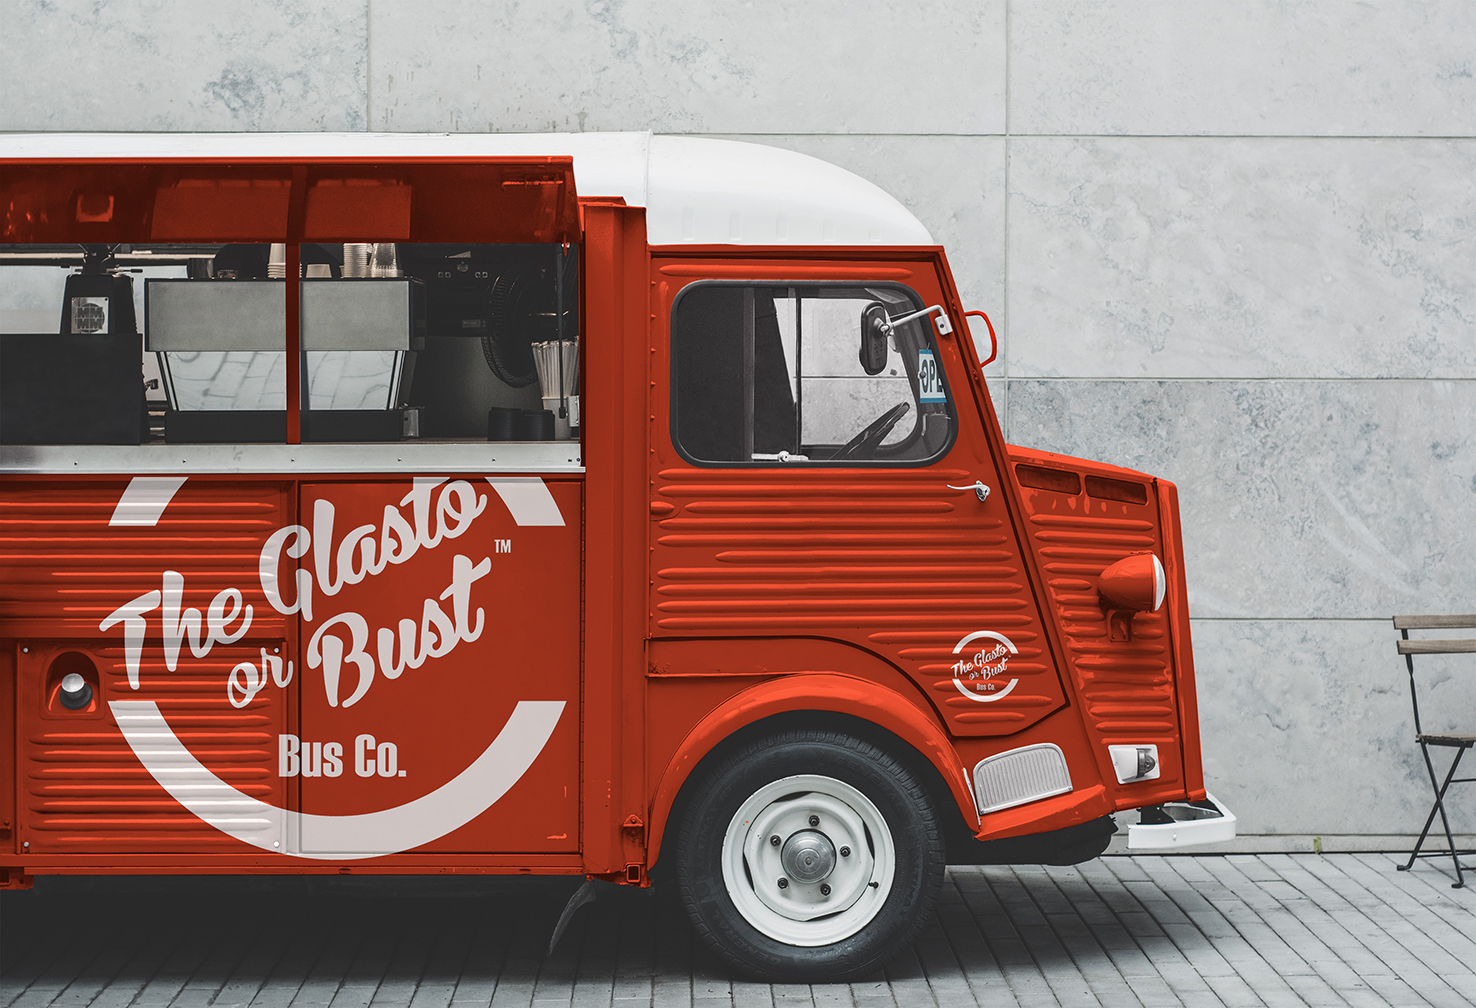 Glasto_bus_co_mockup